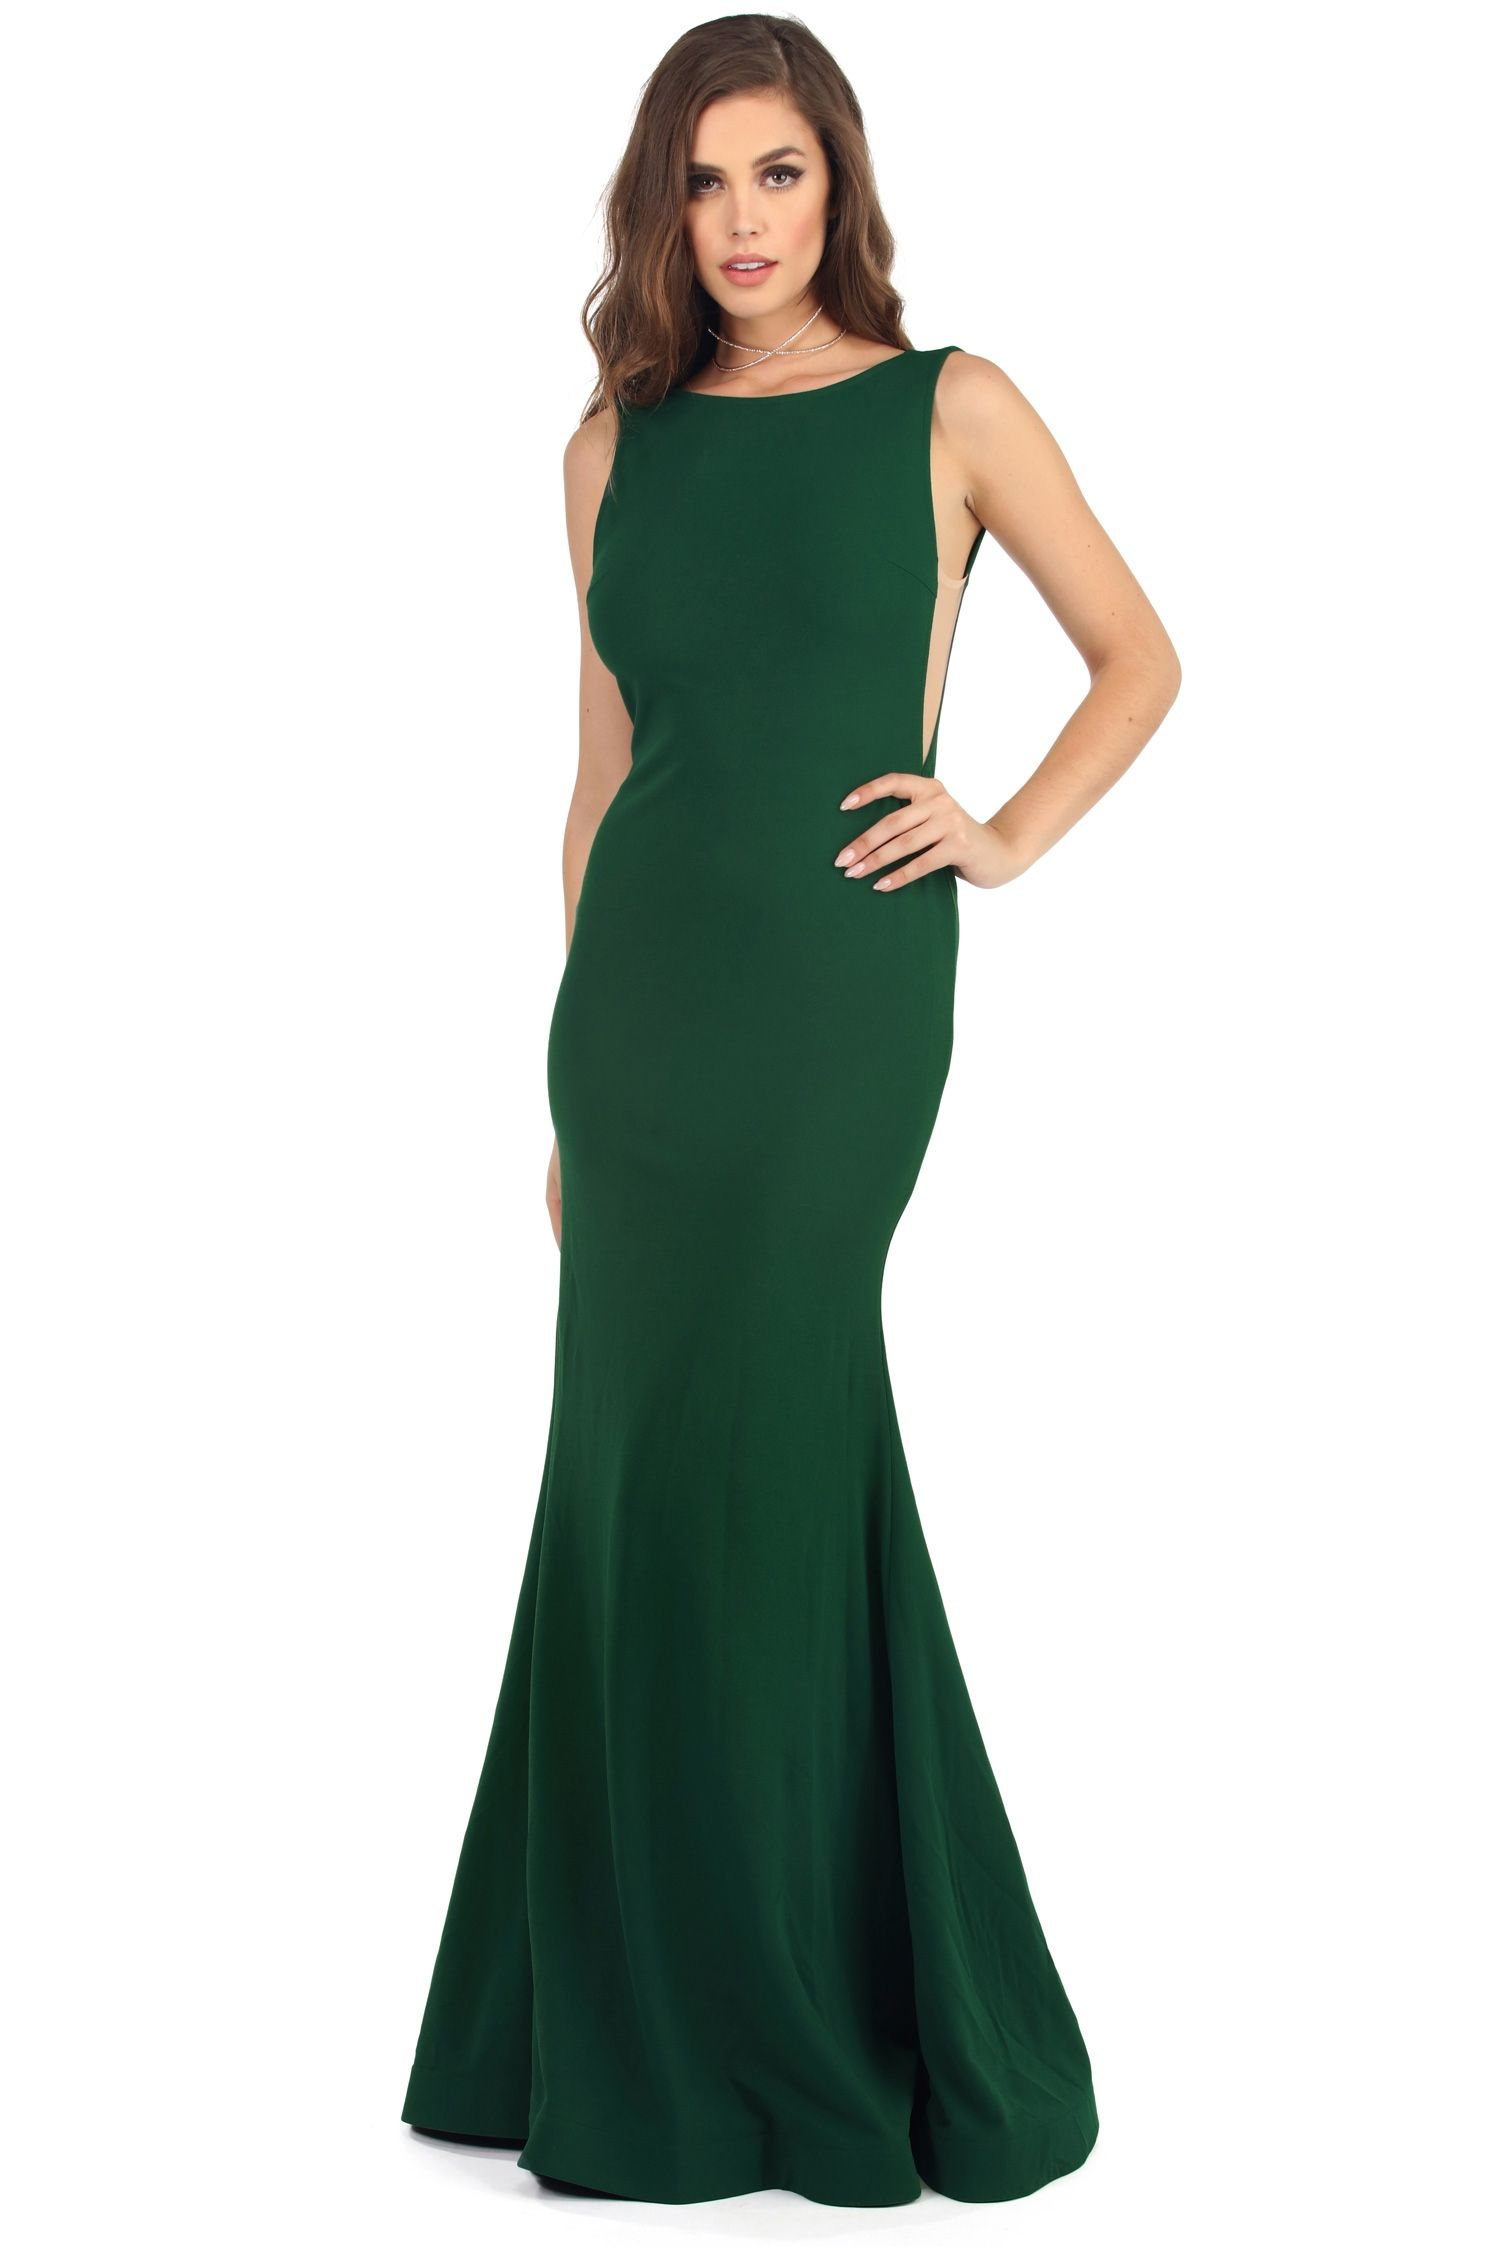 Zara Emerald Backless Beauty Dress | windsor | Engagement Shoot :D ...